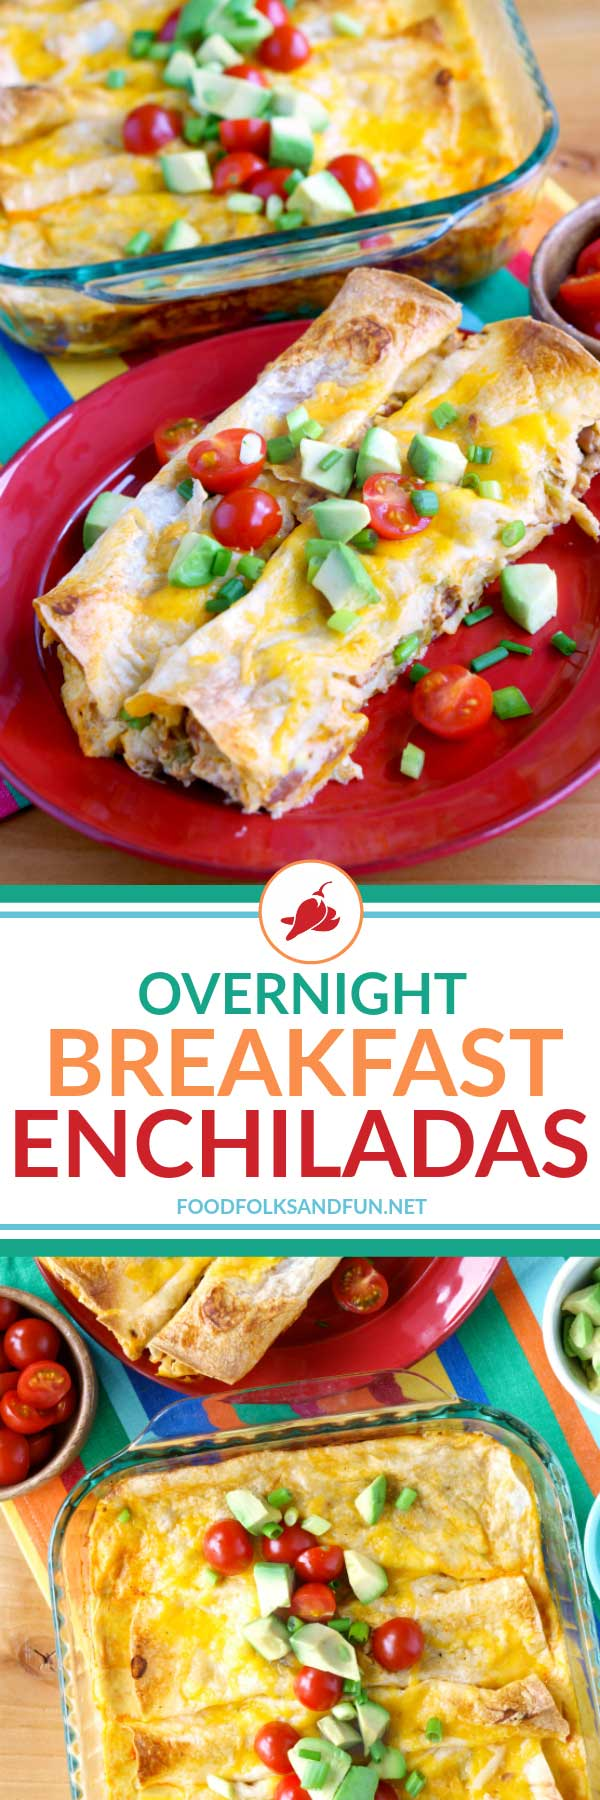 Overnight Breakfast Enchiladas